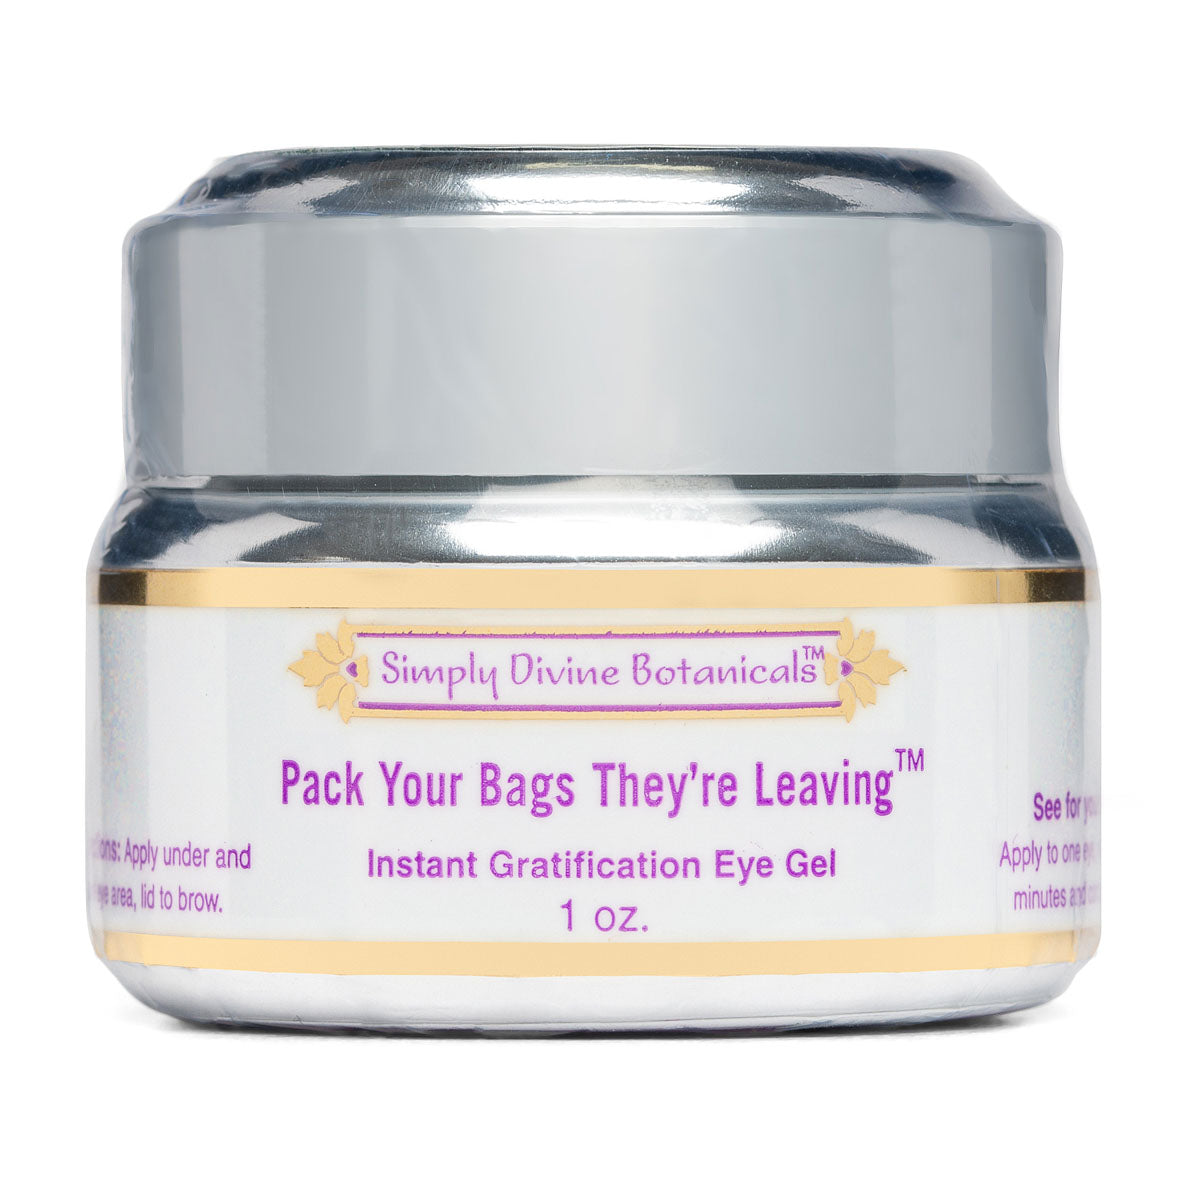 Pack Your Bags They're Leaving Eye Gel (1 oz) - Simply Divine Botanicals